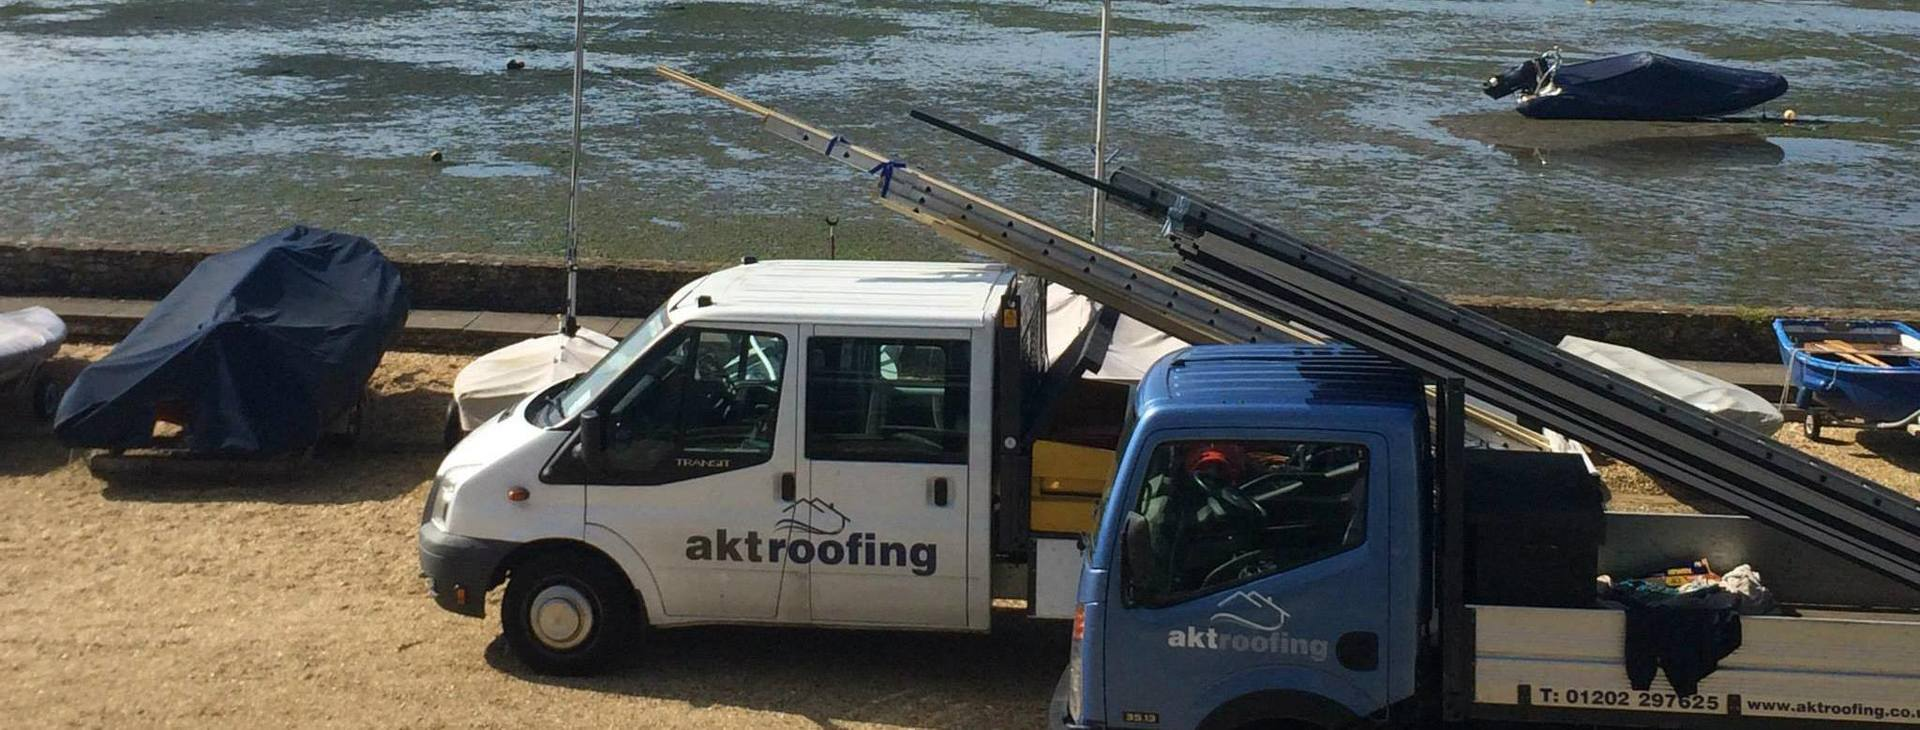 AKT Roofing service vehicle